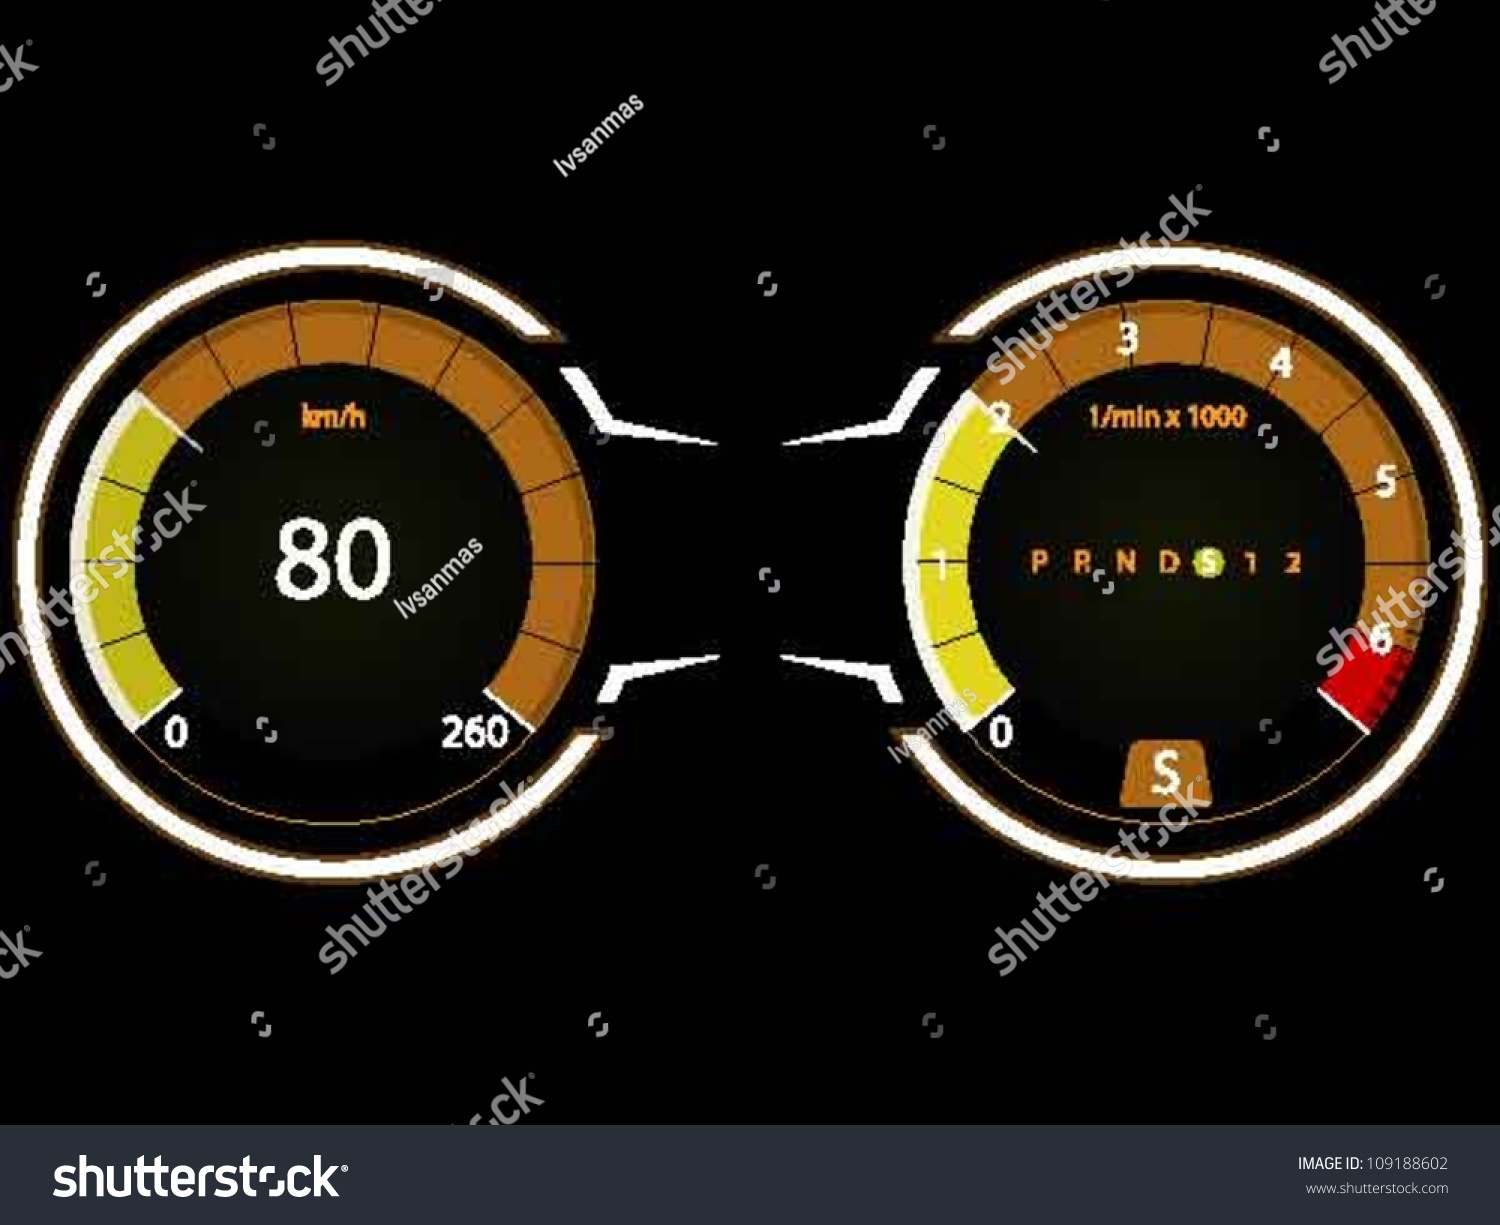 rpm gauge vector. digital modern speedometer and rpm gauge, with gear selection indicator, isolated on black rpm gauge vector